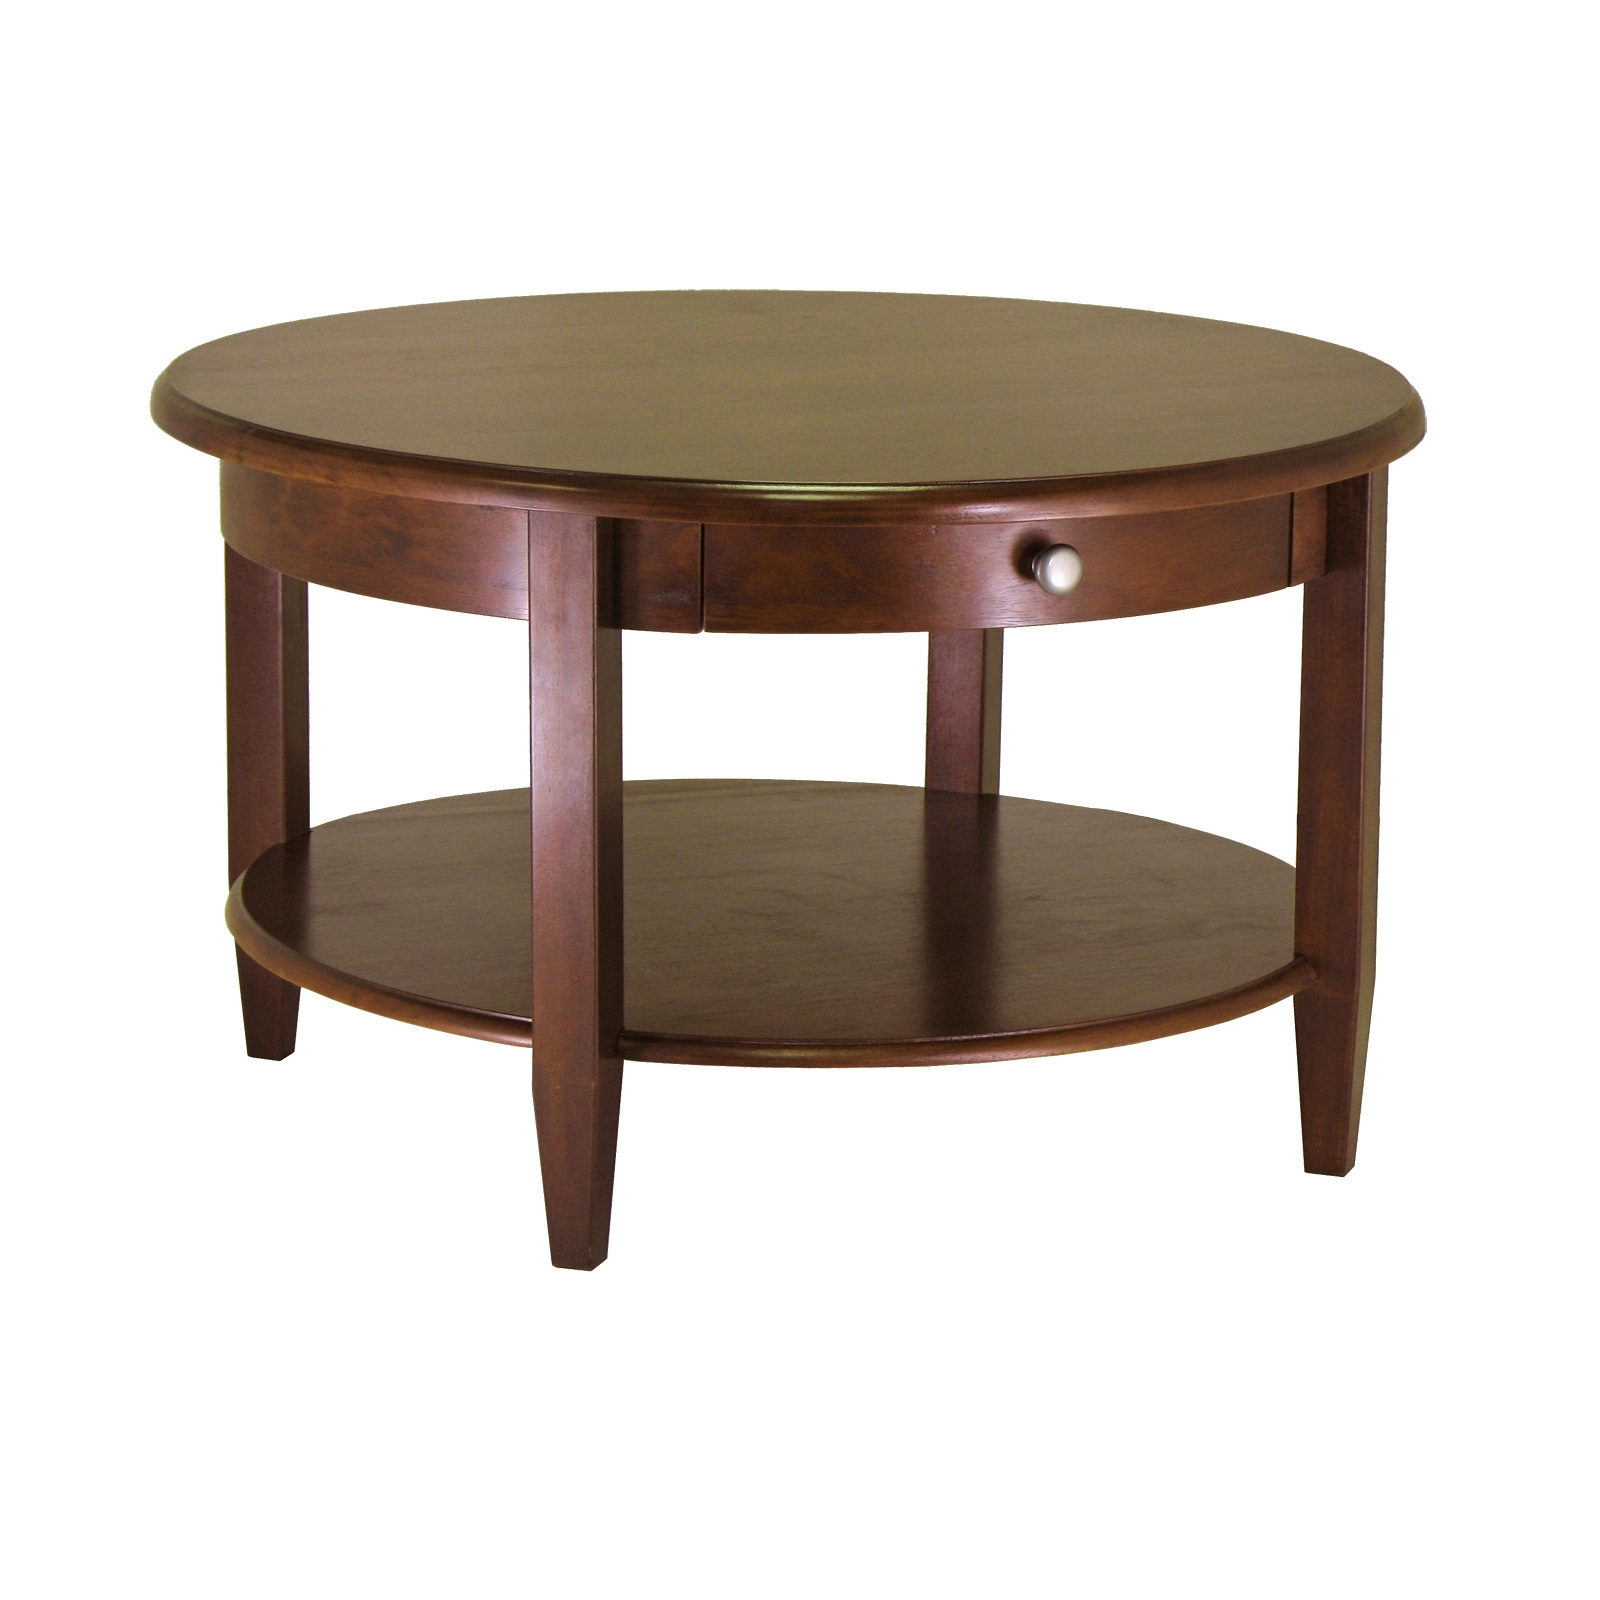 Winsome Wood Concord Round Coffee Table, Walnut Finish – Walmart Pertaining To Current Walnut Finish 6 Drawer Coffee Tables (View 20 of 20)